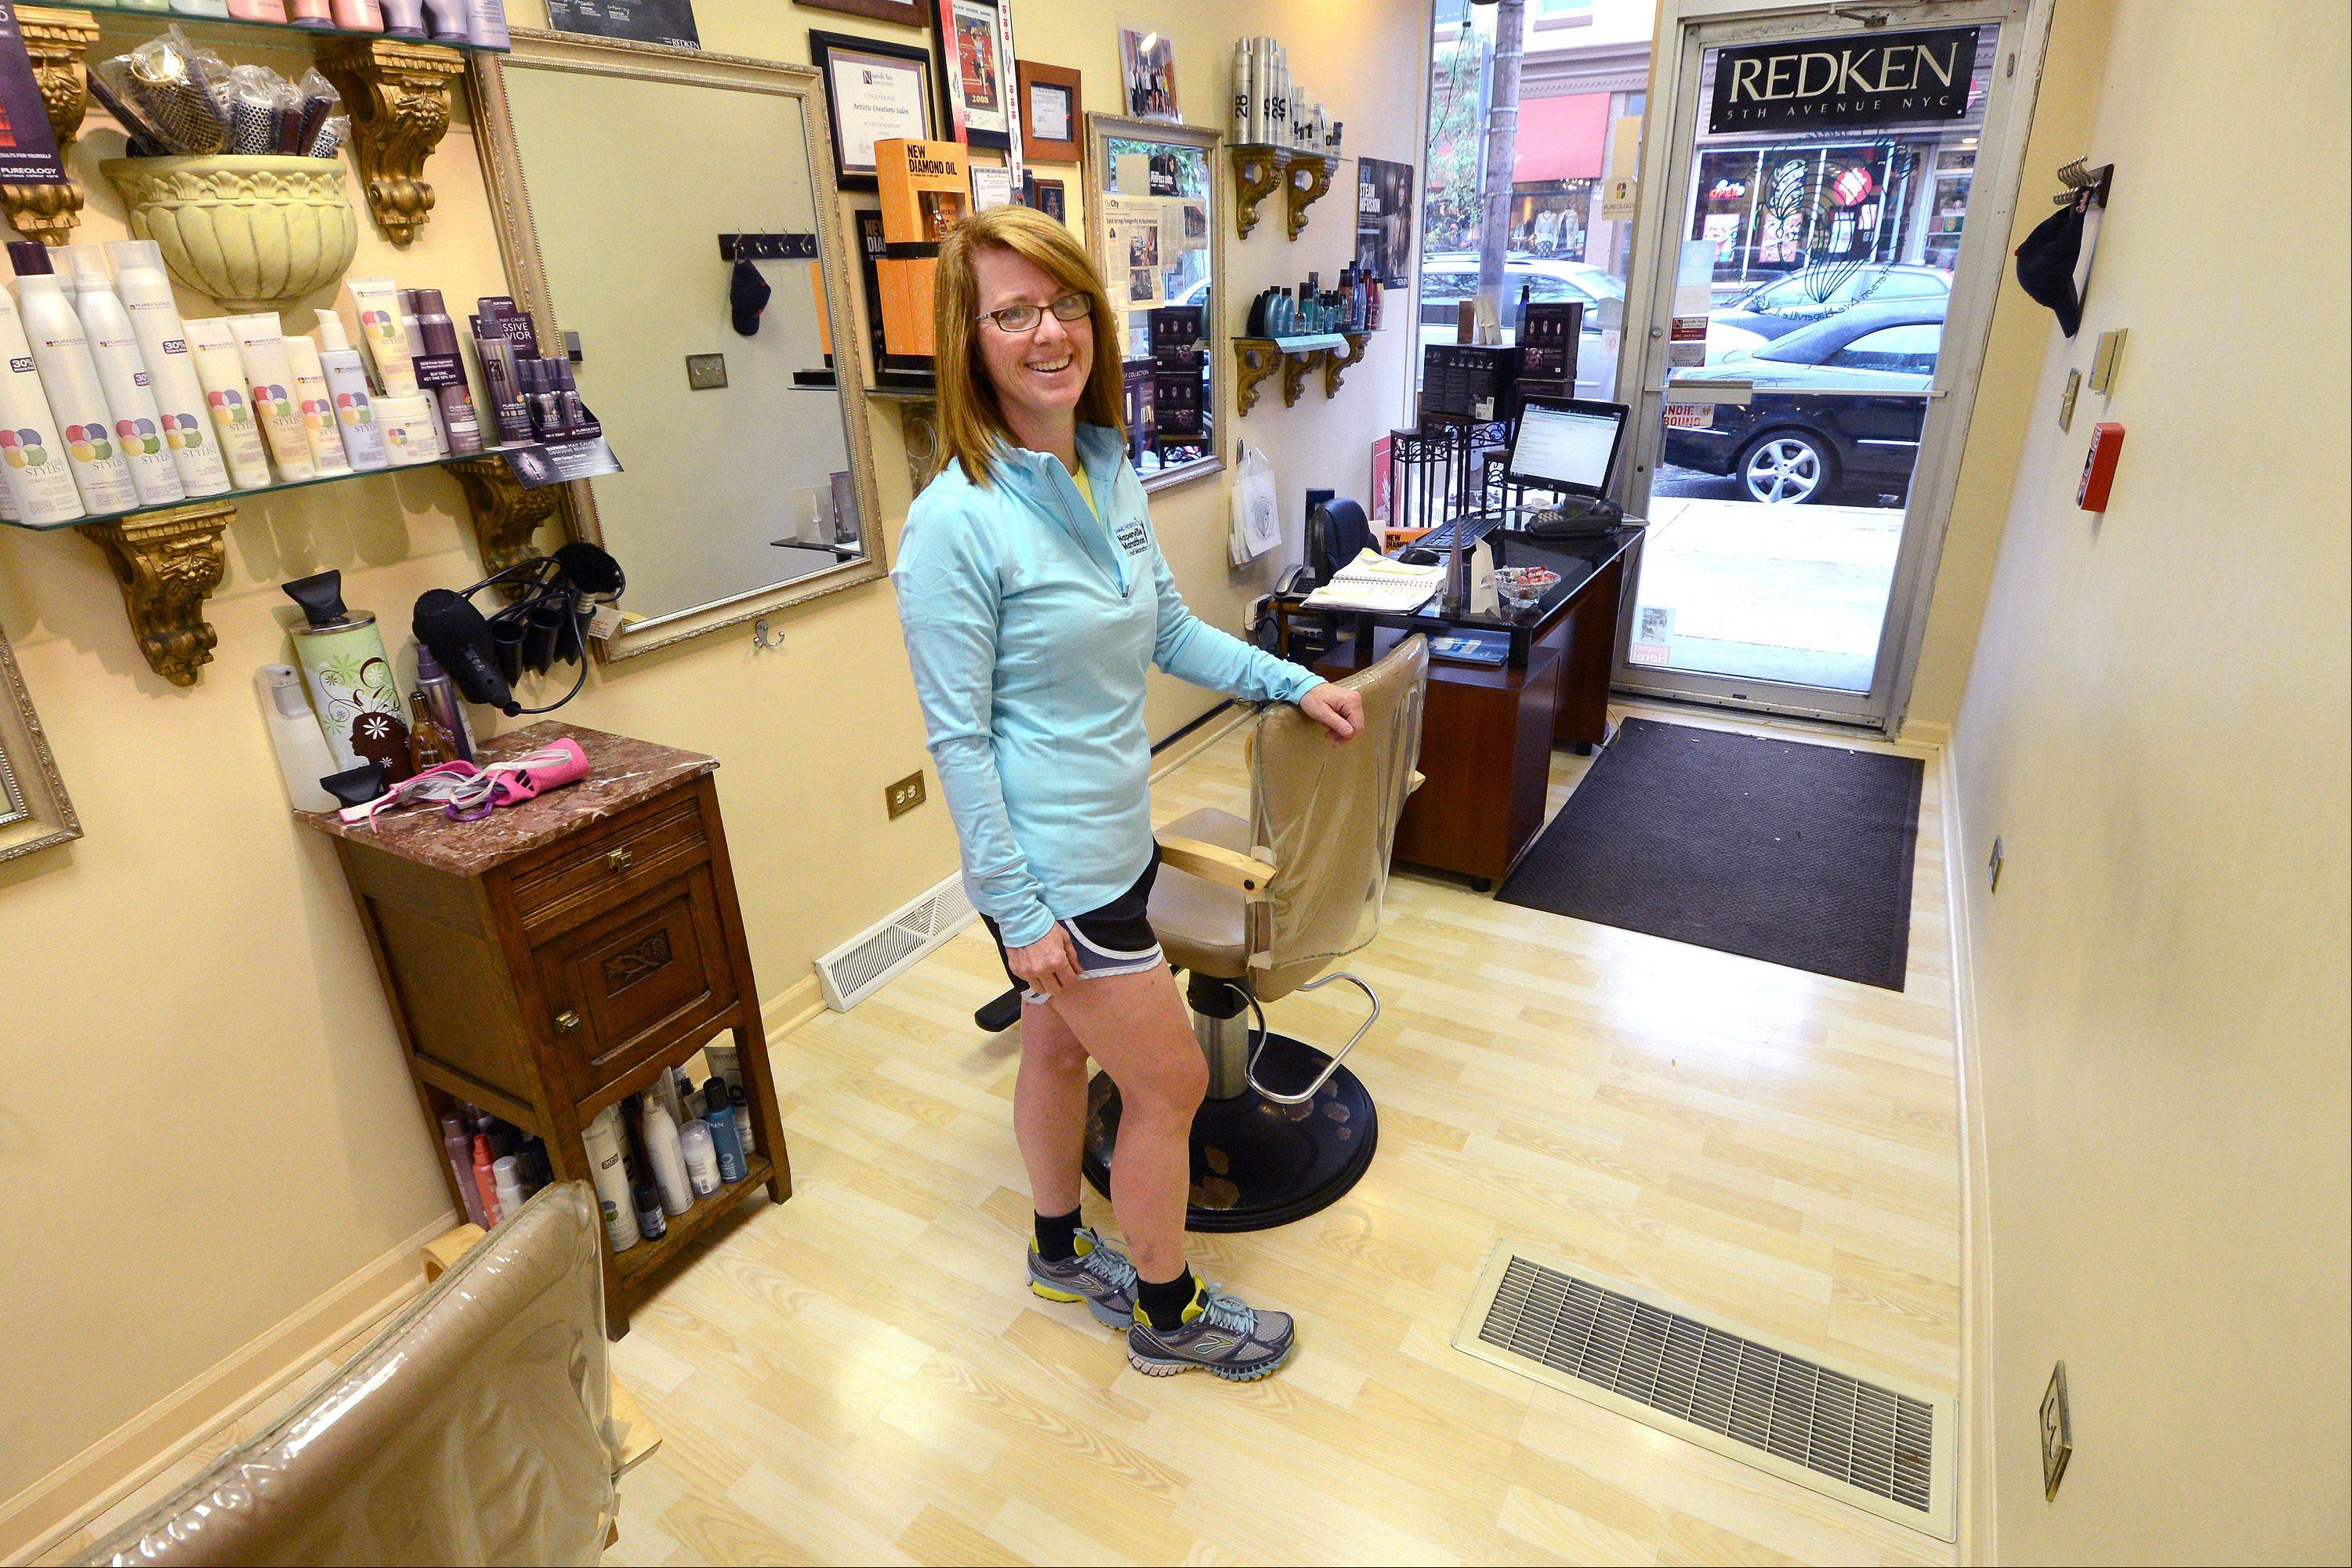 Terri Hayes, owner of Artistic Creations Salon in downtown Naperville, is running the Naperville Half Marathon on Sunday along a route that starts and finishes not far from her salon's location. Business operators wanted the race to incorporate the downtown to bring runners and fans to the area to shop and dine.